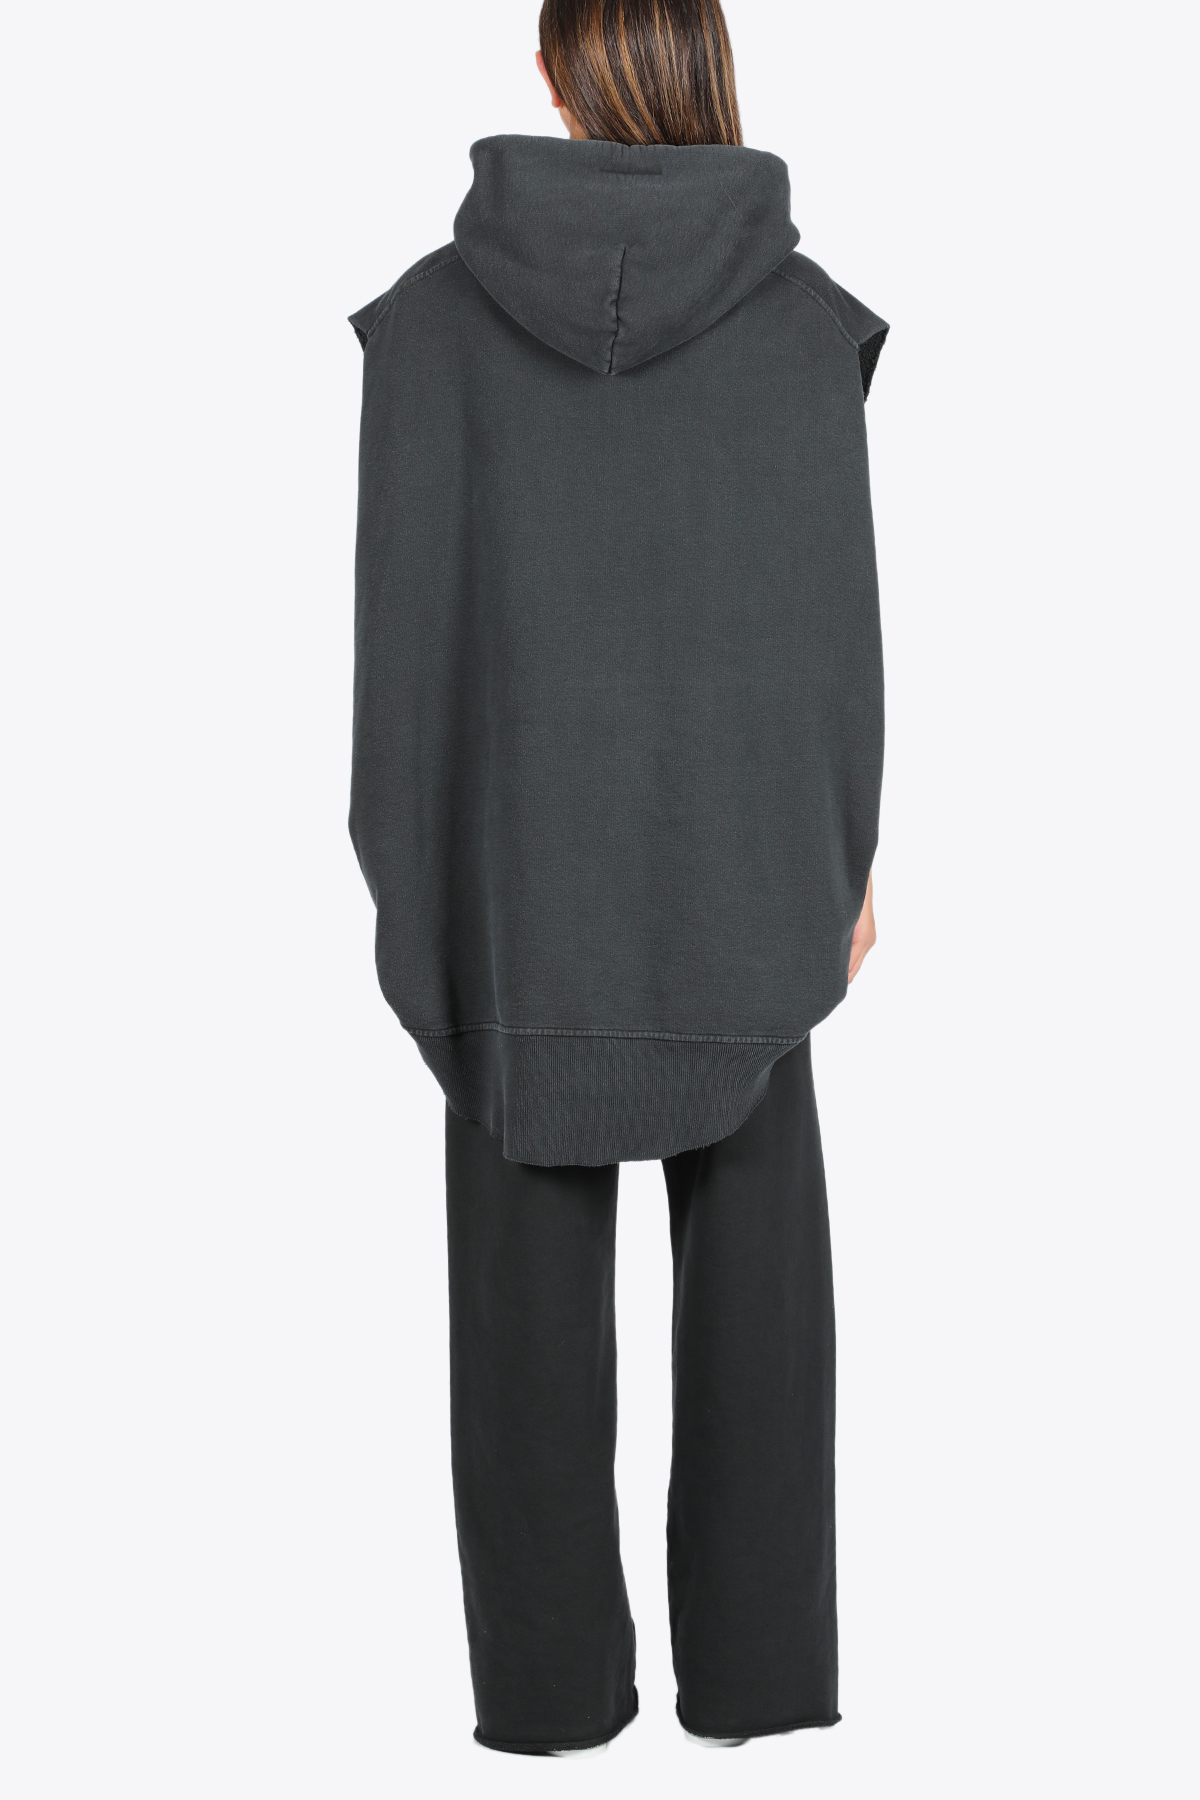 OVERSIZED SLEEVELESS HOODIE MM6 MAISON MARGIELA | 11 | S62CT0099 S25409855